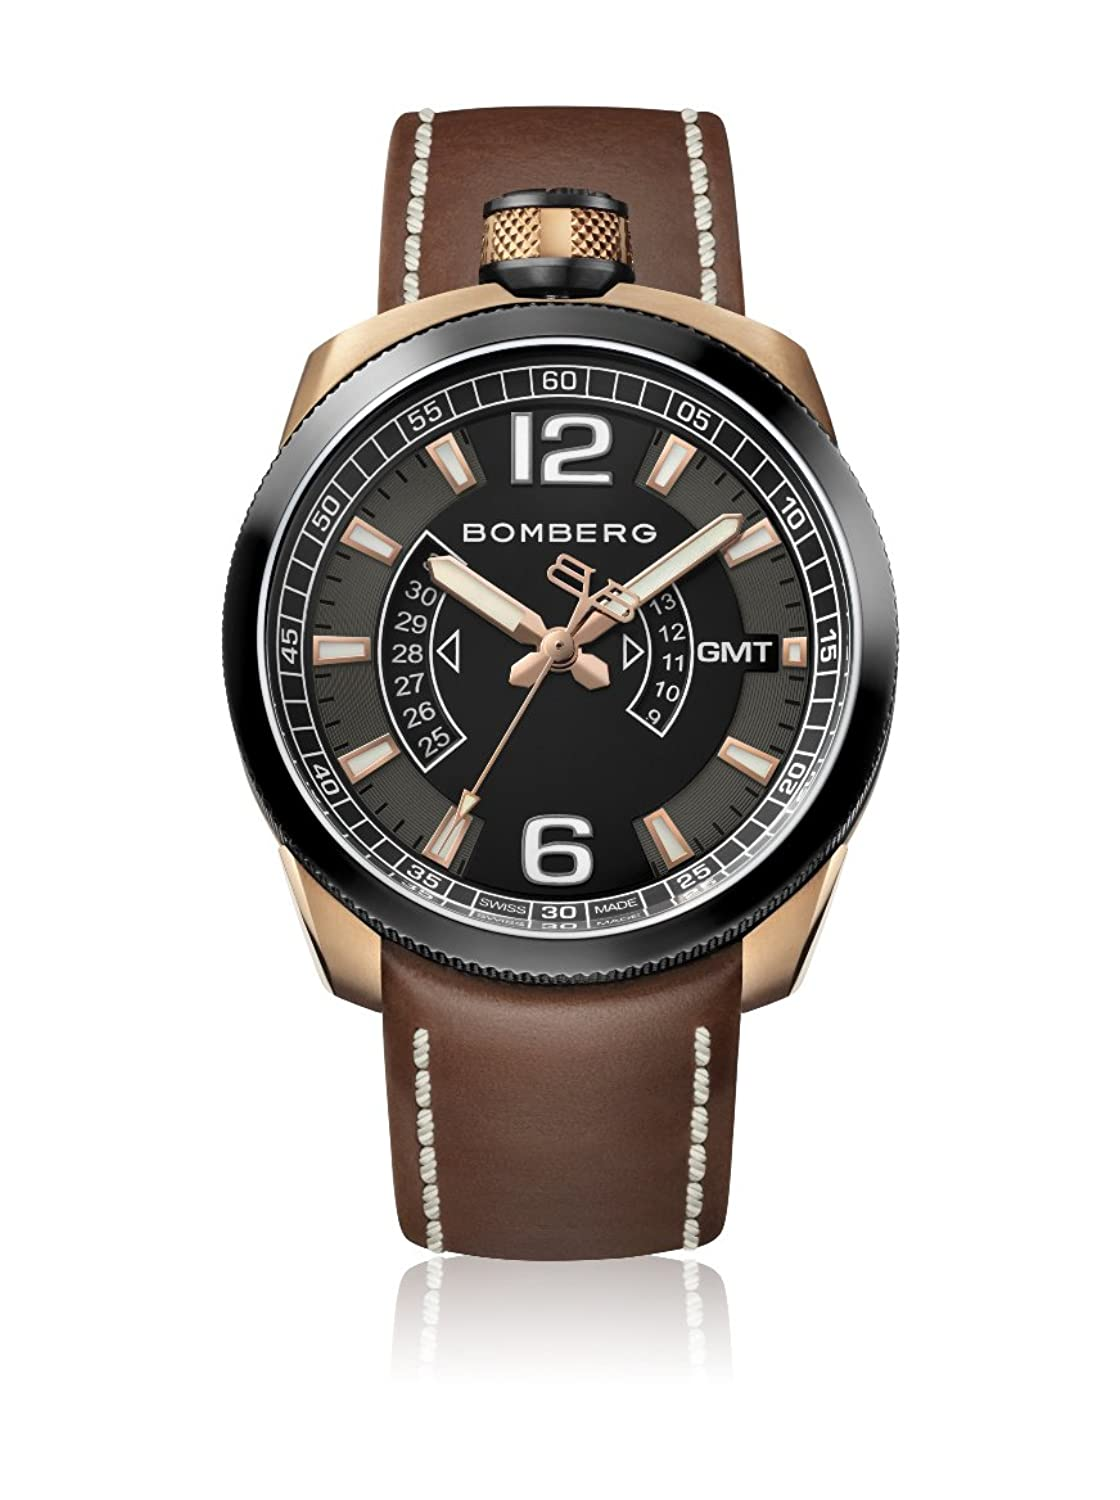 Bomberg BS45GMTTT.006.3 Bolt-68 collection Uhren - Swiss Made - 45 mm - Convertible taschenuhren